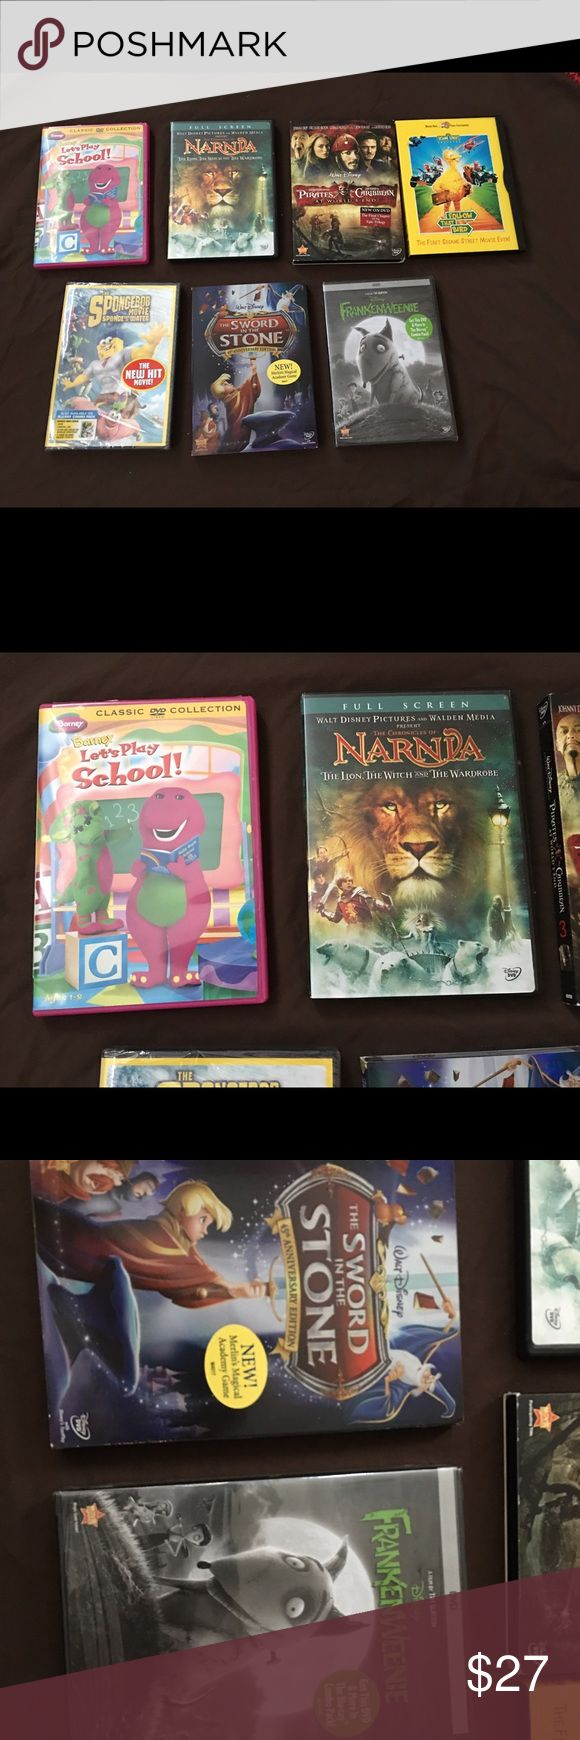 Children Themed Dvd Movies For Sale Is A Set Of 7